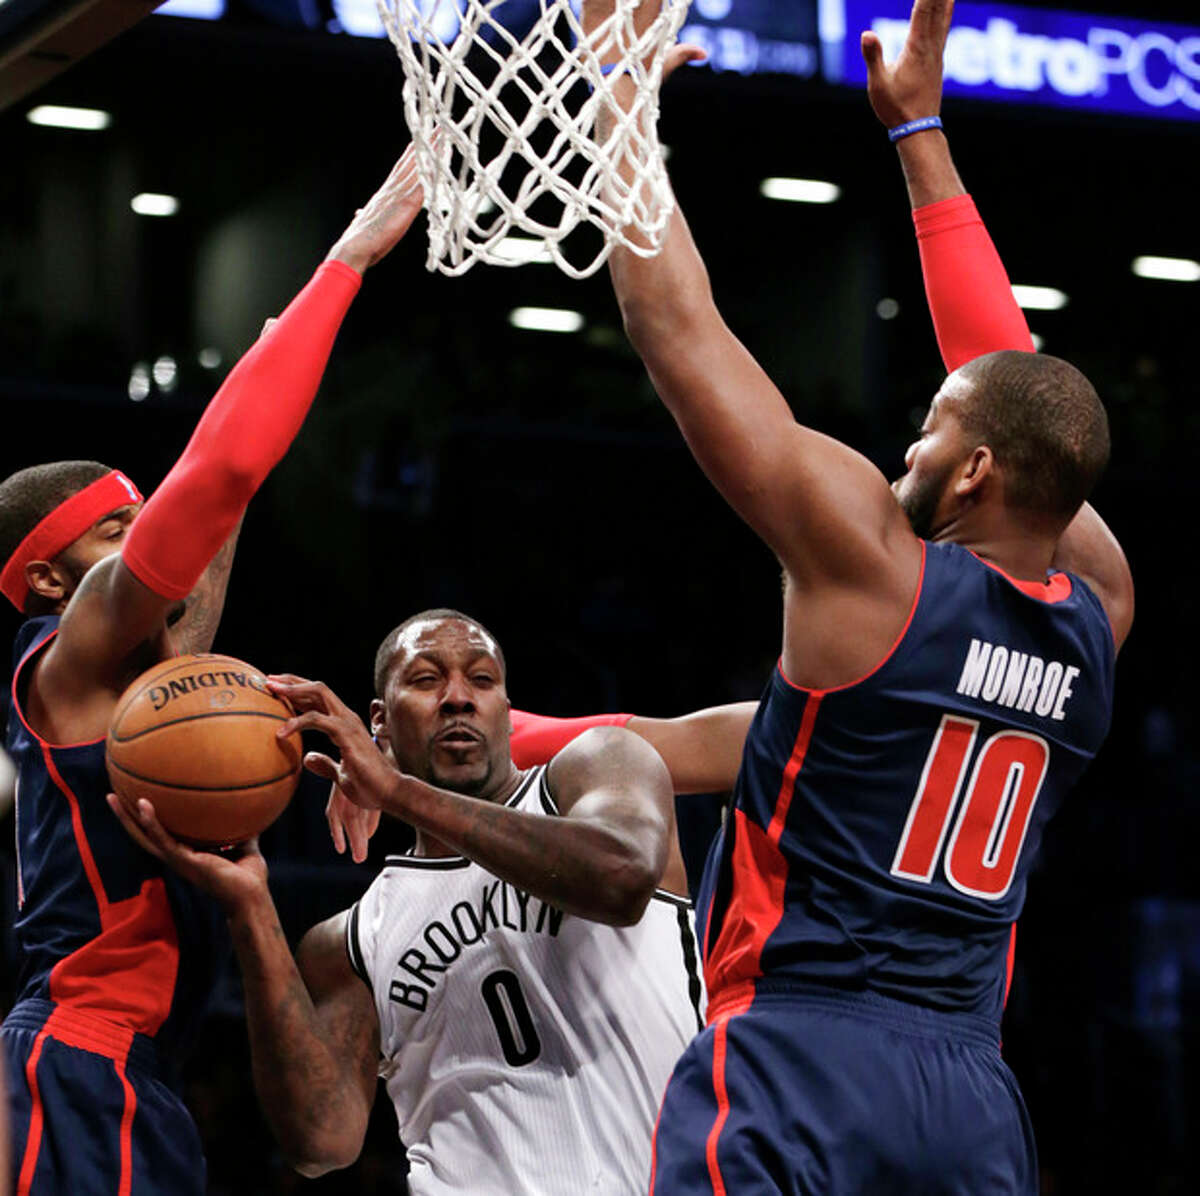 Brooklyn Nets center Andray Blatche (0) looks to pass as Detroit Pistons forward Greg Monroe (10) tries to block him in the first half of an NBA basketball game, Sunday, Nov. 24, 2013, in New York. (AP Photo/Kathy Willens)